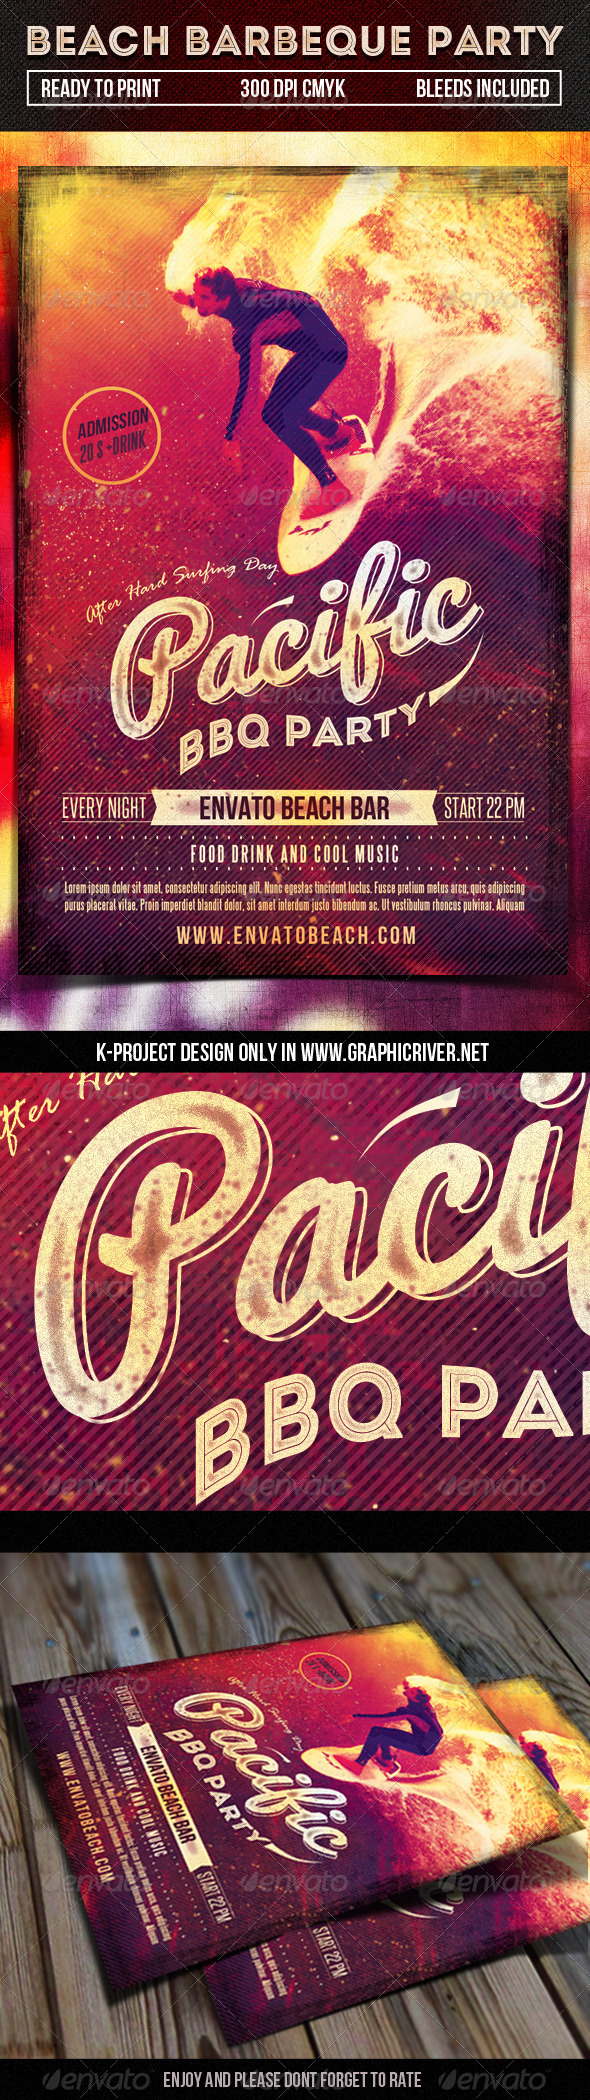 GraphicRiver Beach Barbeque Party Flyer 7822986